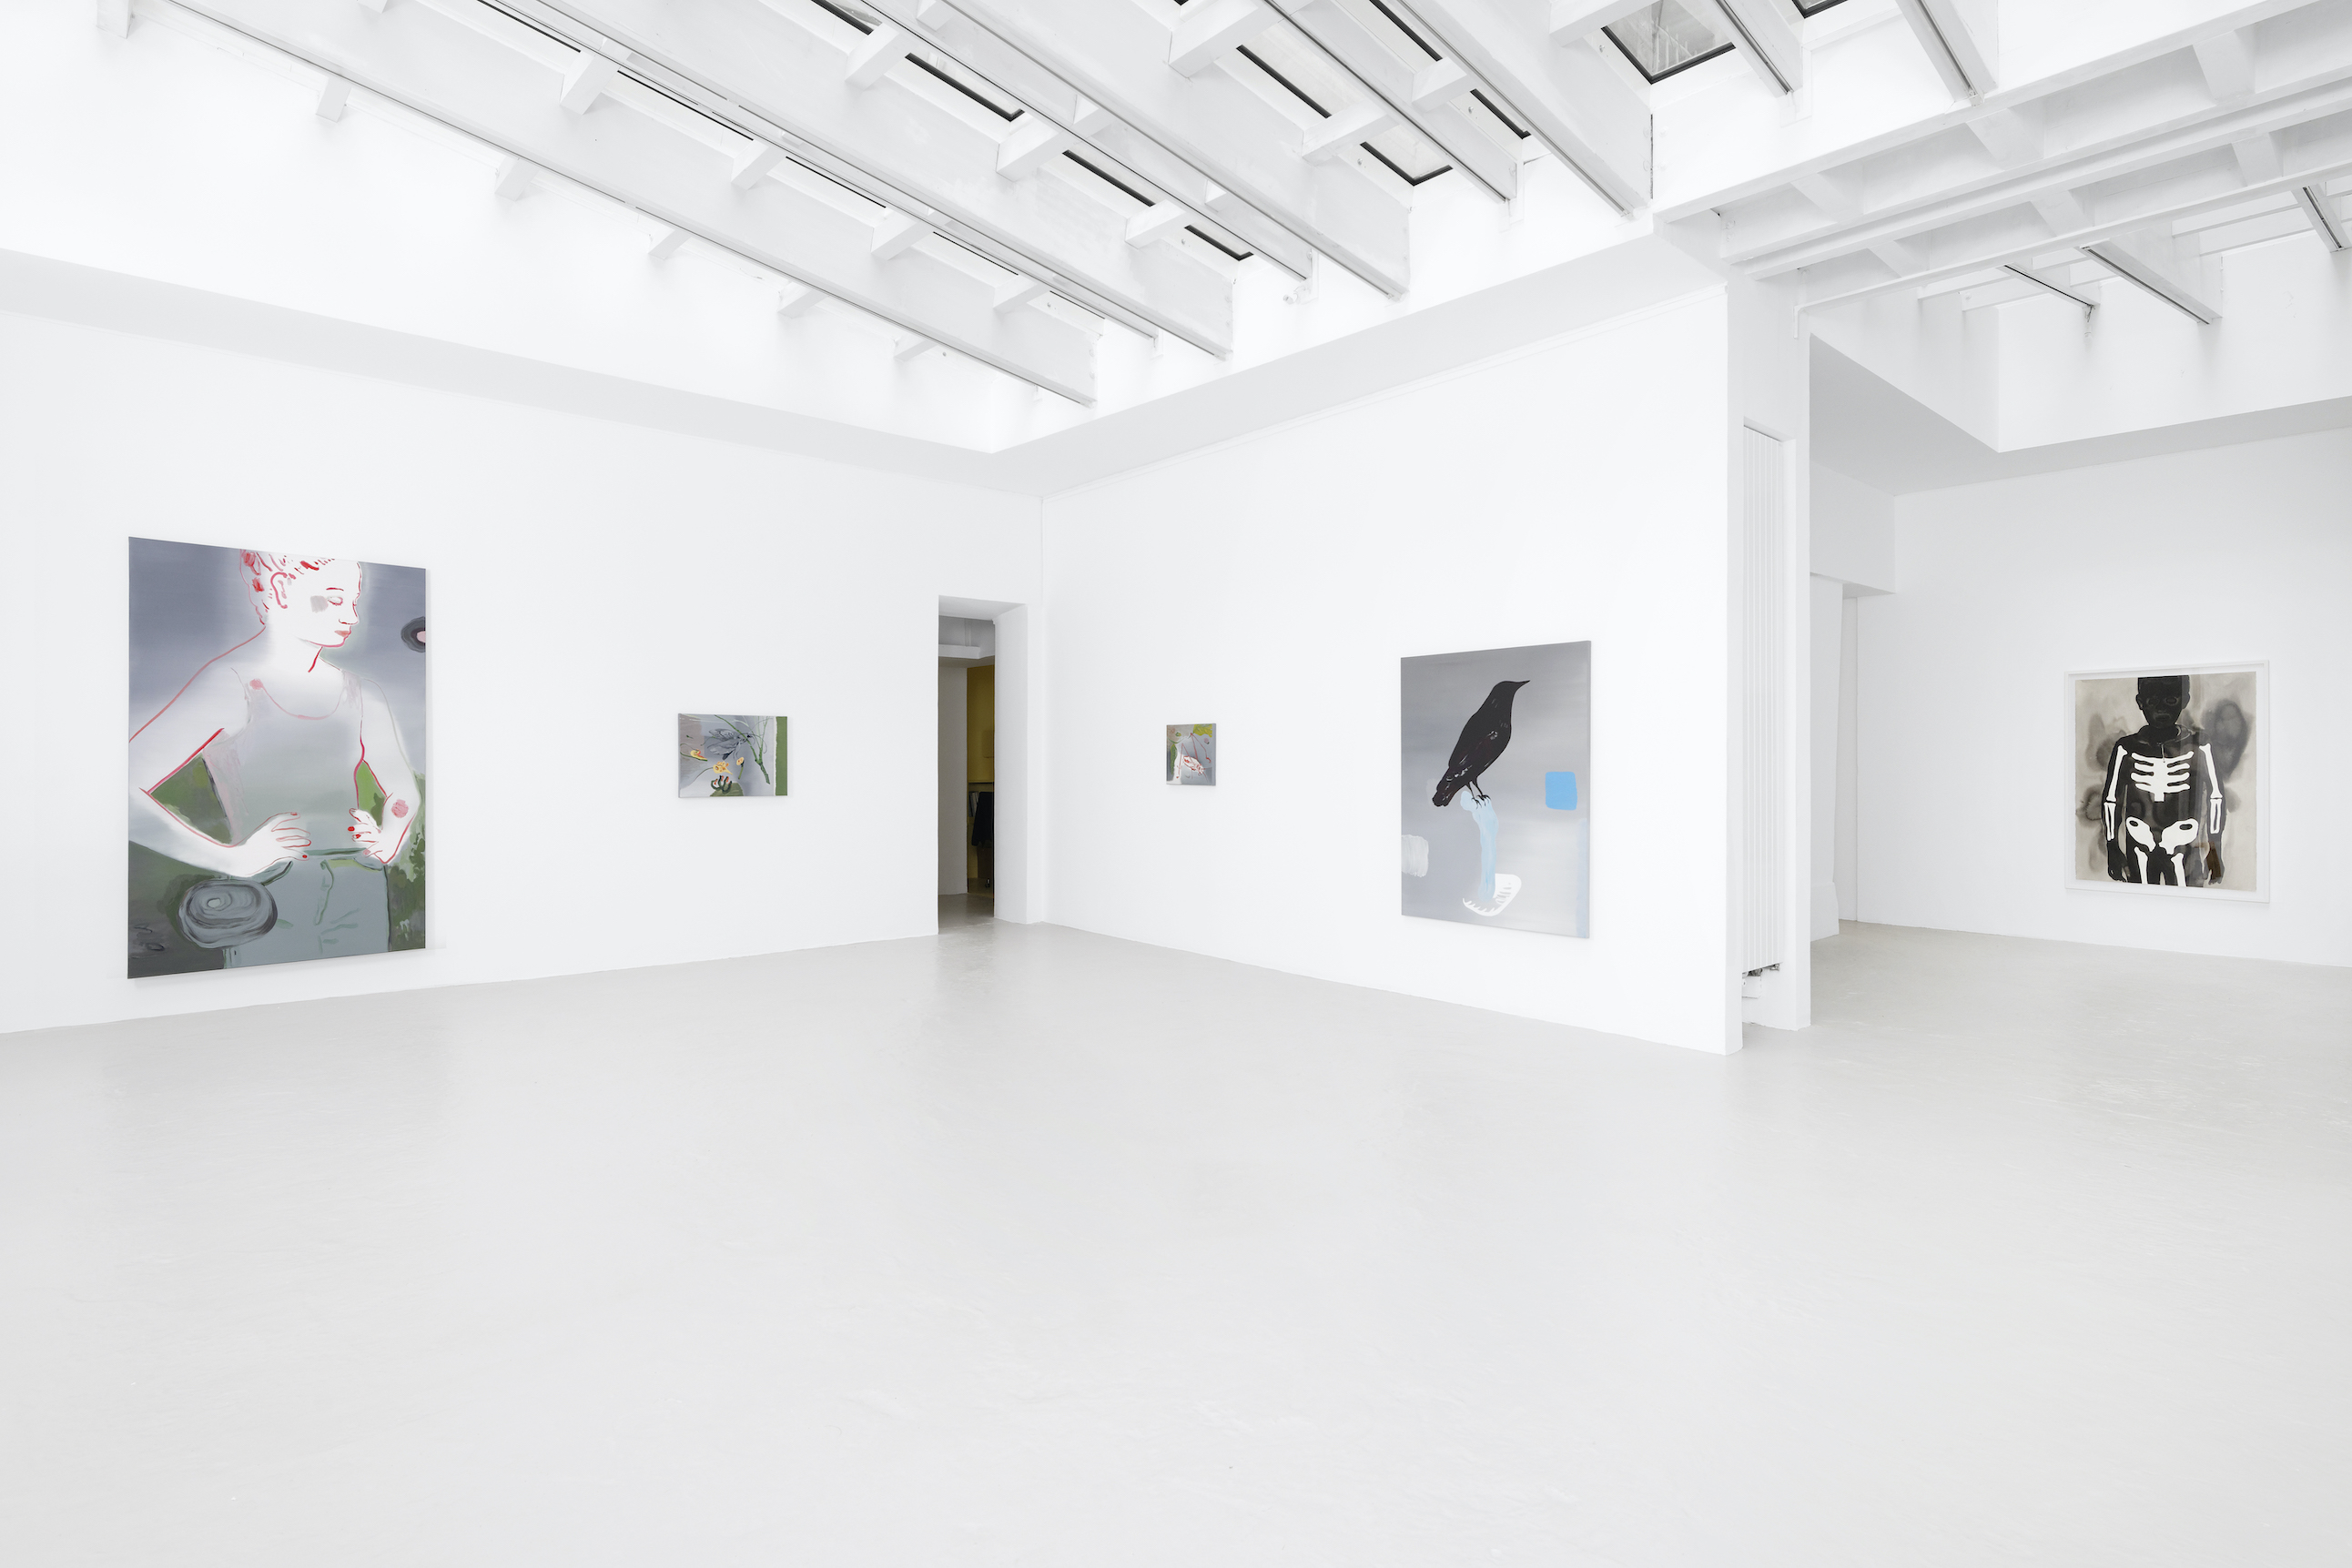 Installation view 2, Forget Me Not, 2020, Courtesy of the artist and Semiose